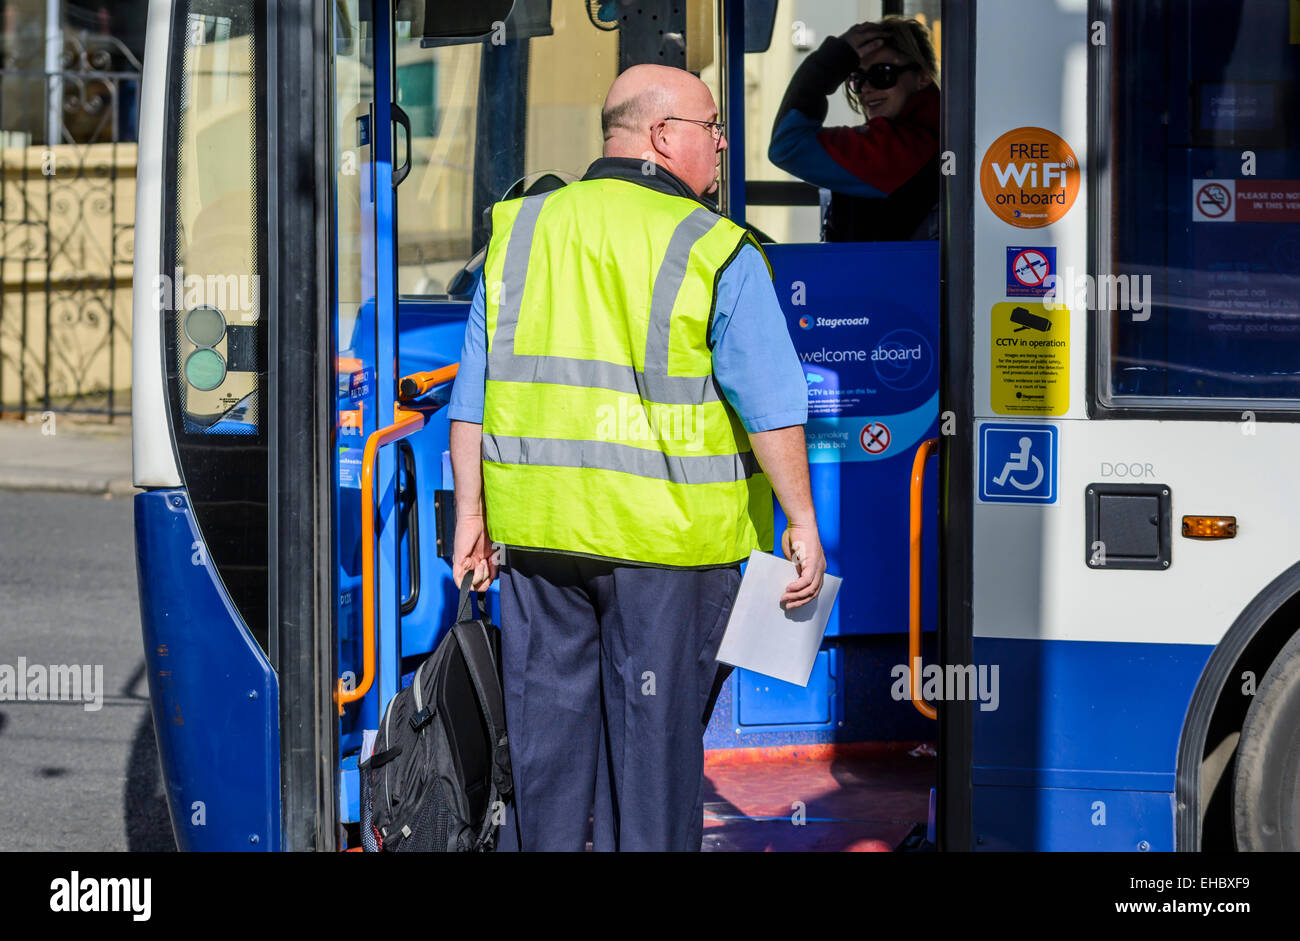 Male bus driver boarding a Stagecoach bus to take over from another driver. - Stock Image